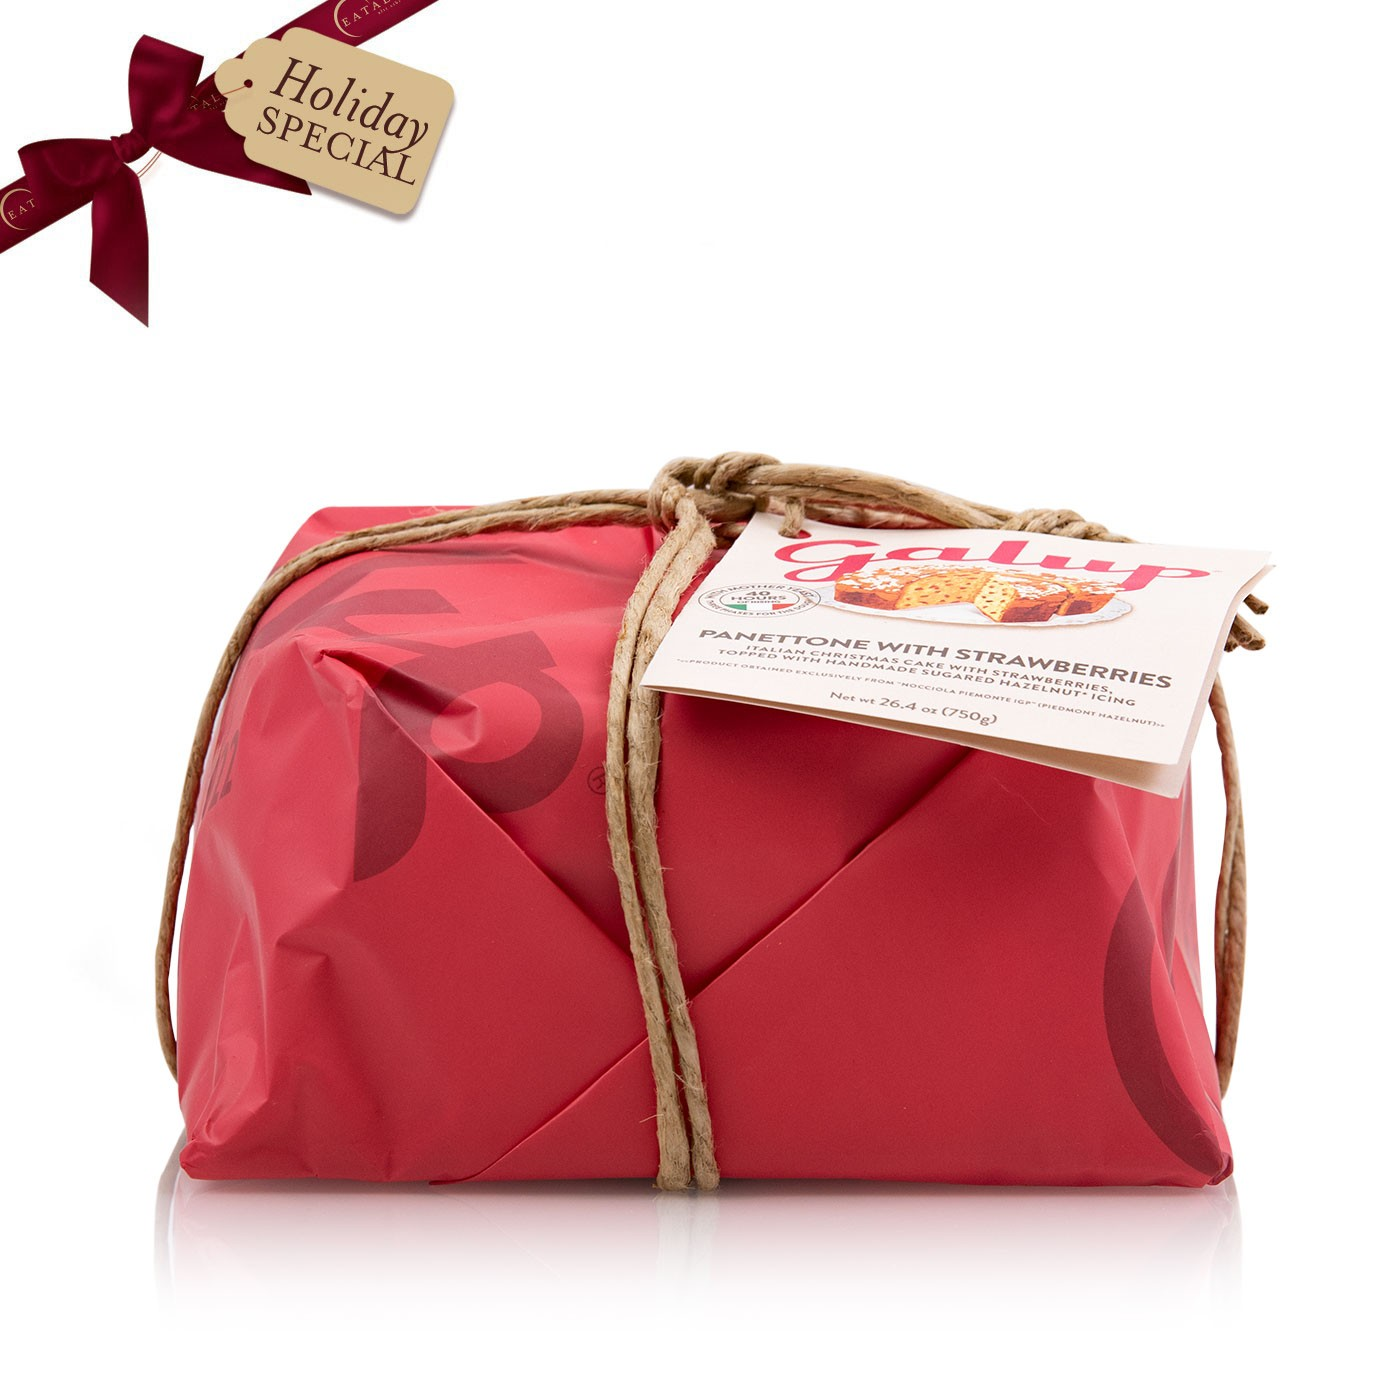 Strawberry Panettone 26 oz